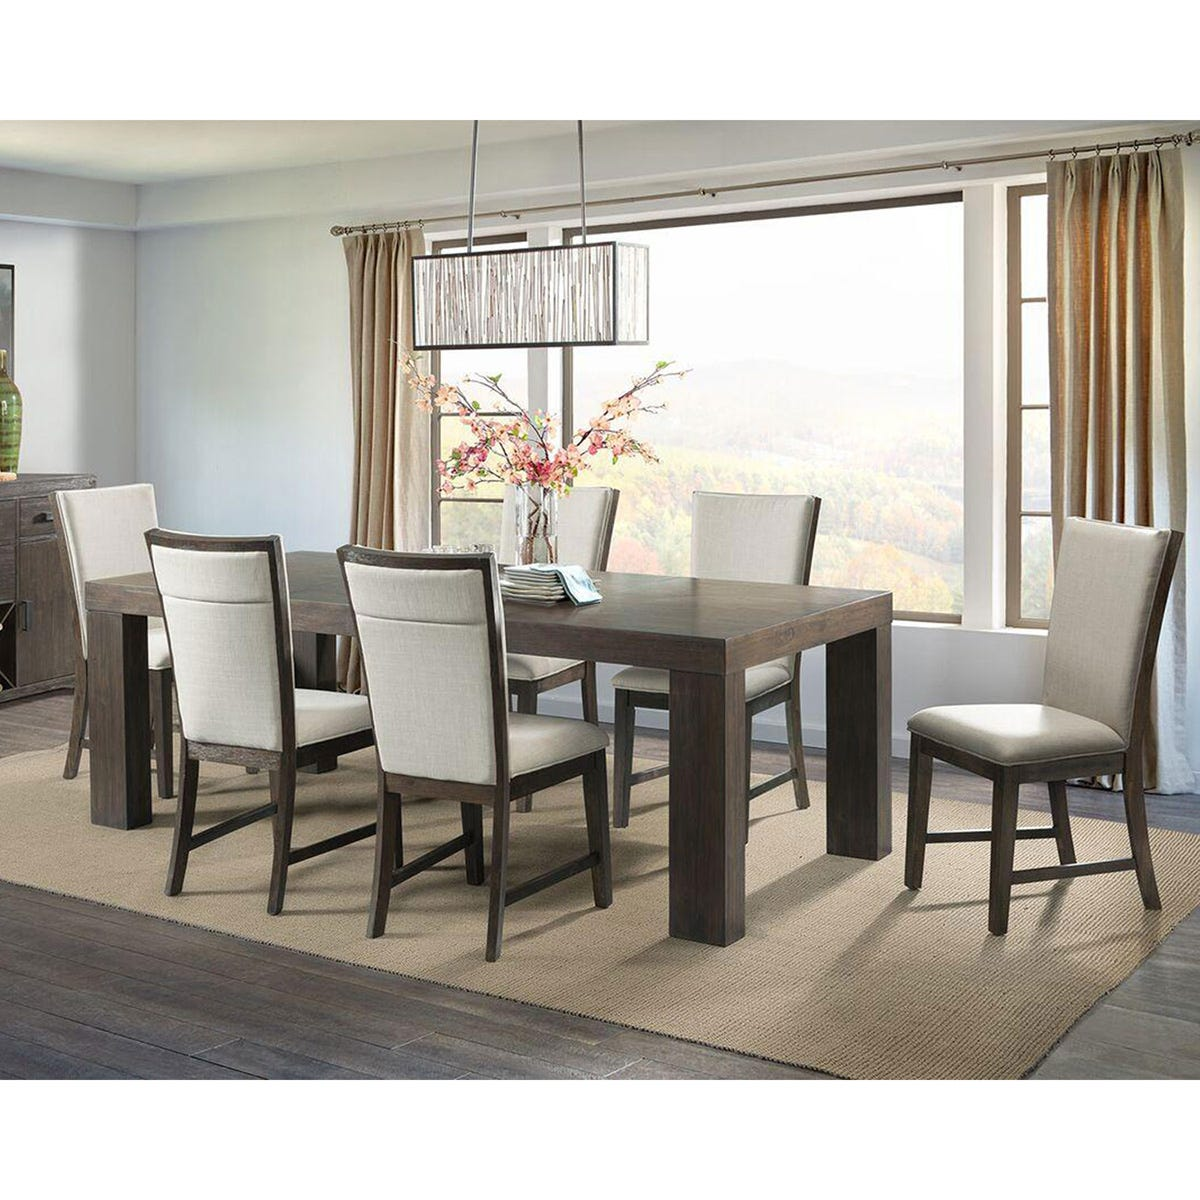 Rectangular Extendable 9 Piece Dining Set Wood Table and Wood Framed Chairs with White Cushioned Seats and Backing